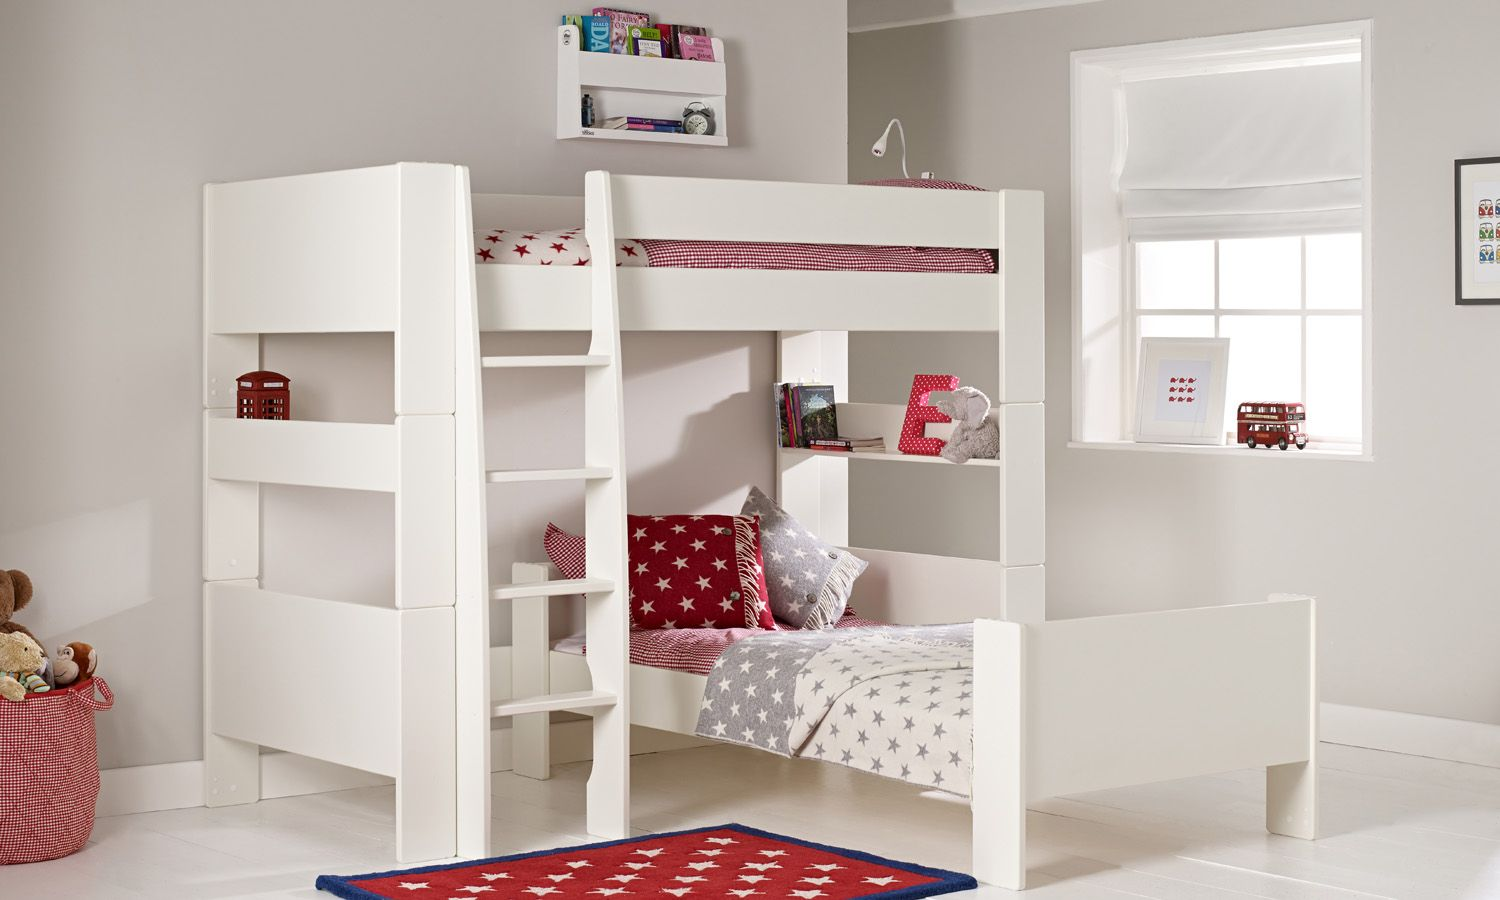 Aztec Kids Bunk Beds In White Timber With Yellow And Red Patterned Linen  And Décor. Available At Forty Winks. | KIDS BEDROOM SUITES | Pinterest |  Double ...